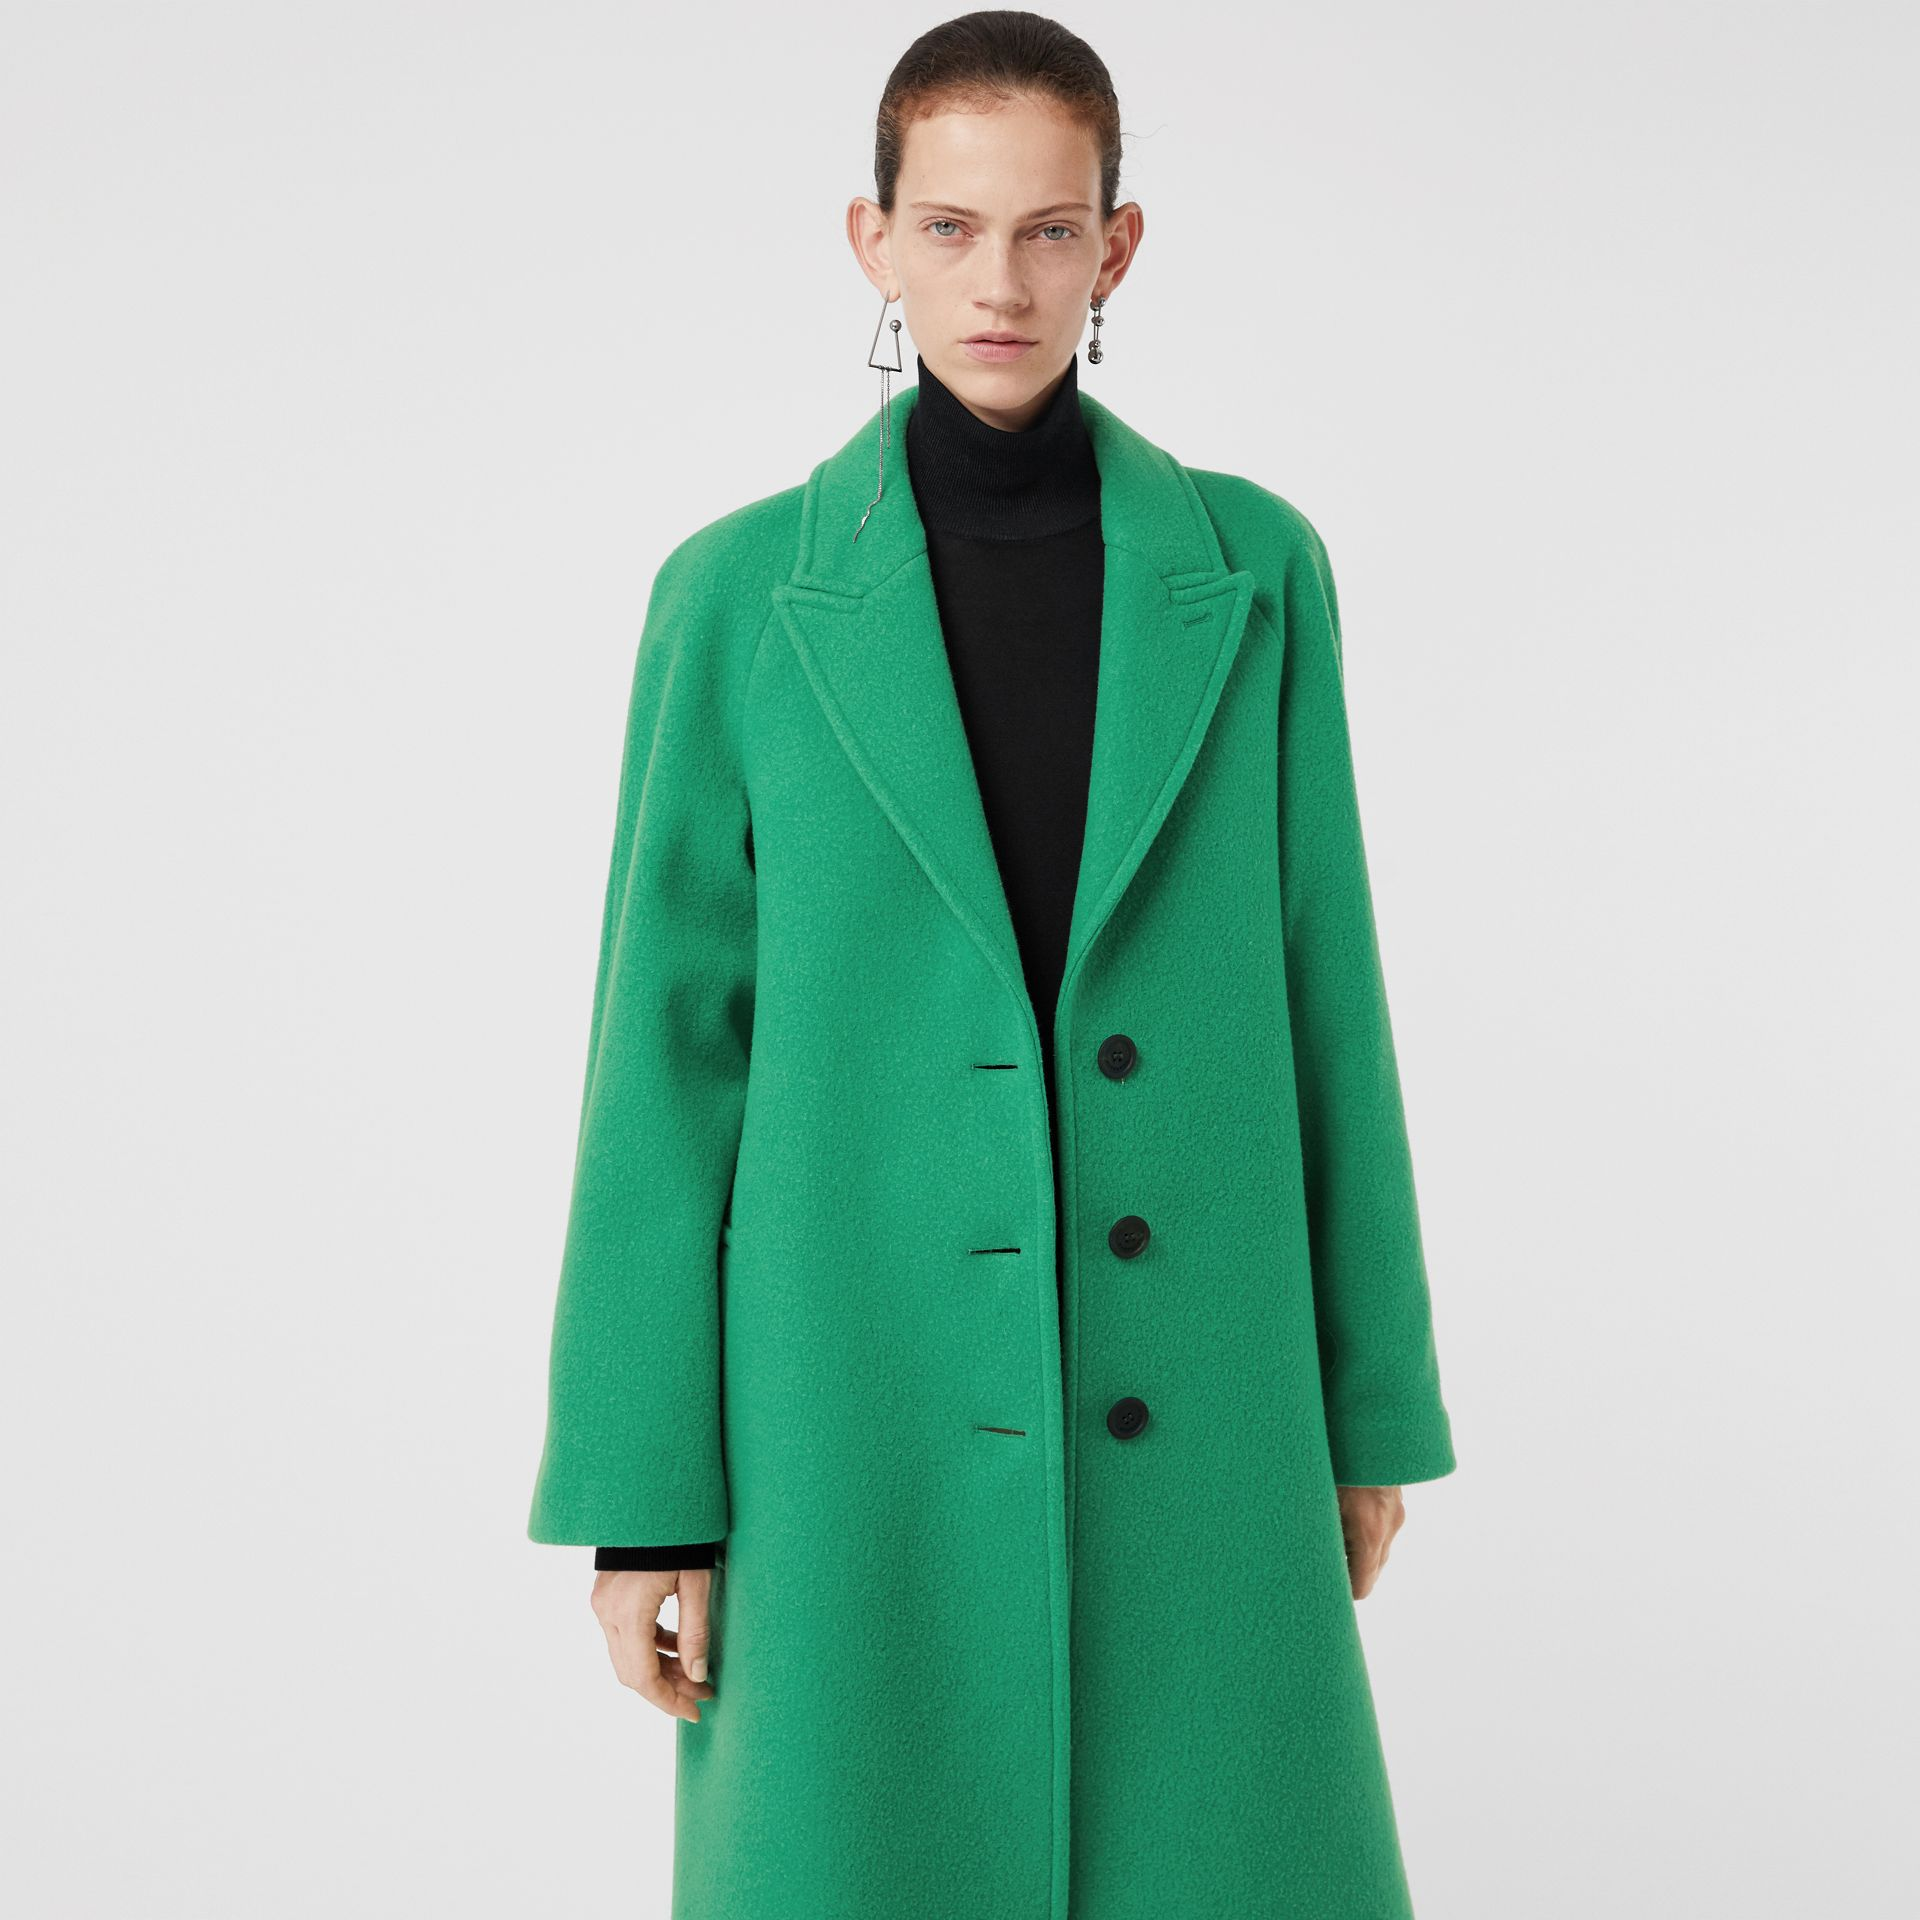 Wool Blend Tailored Coat in Bright Green - Women | Burberry Hong Kong - gallery image 4